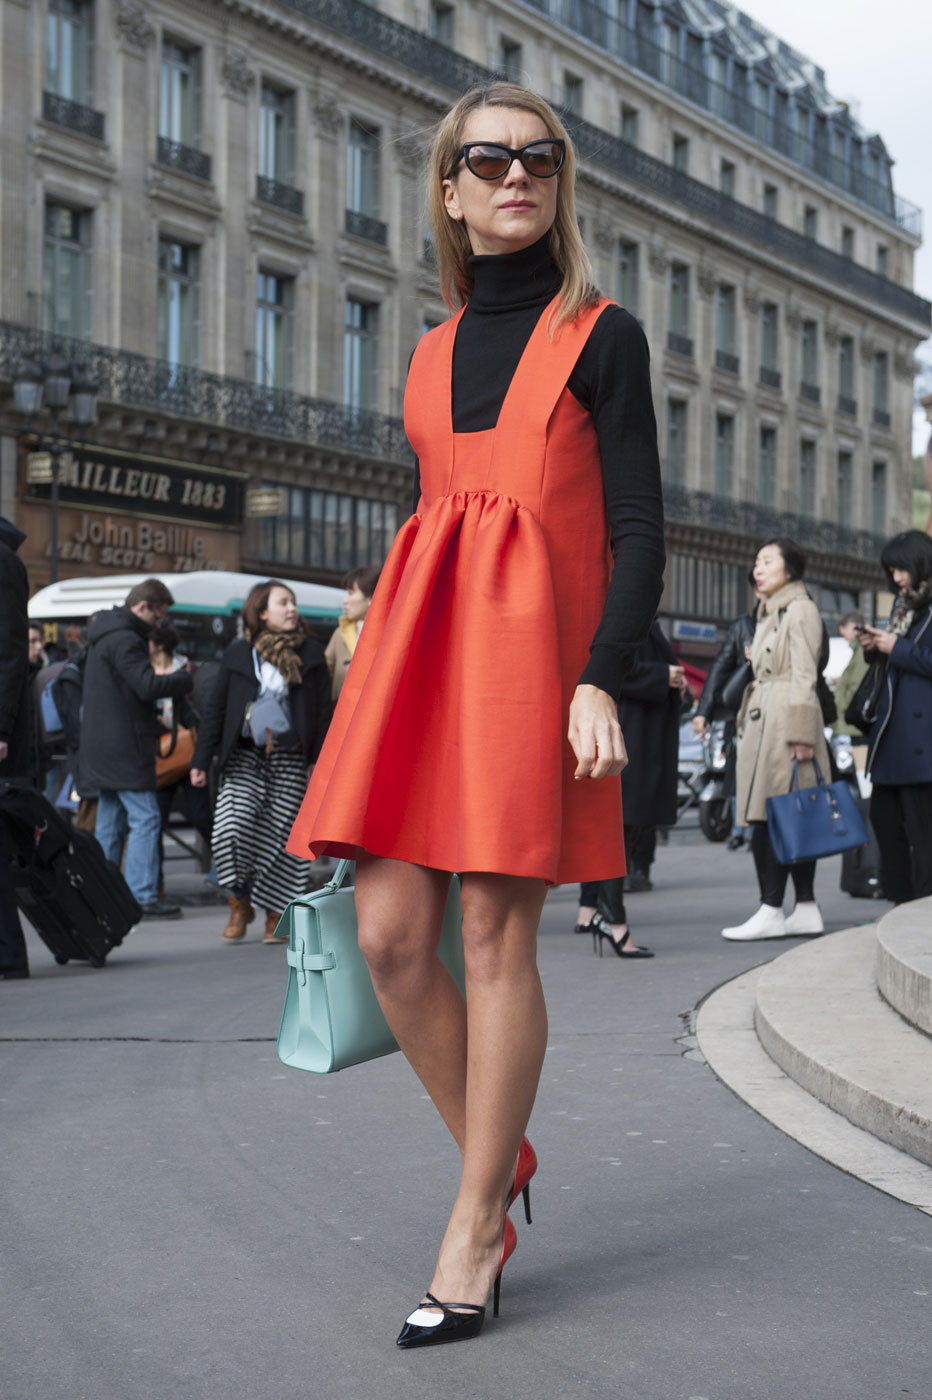 shirts-under-dresses-cocktail-dresses-for-day-via-stylecaster-